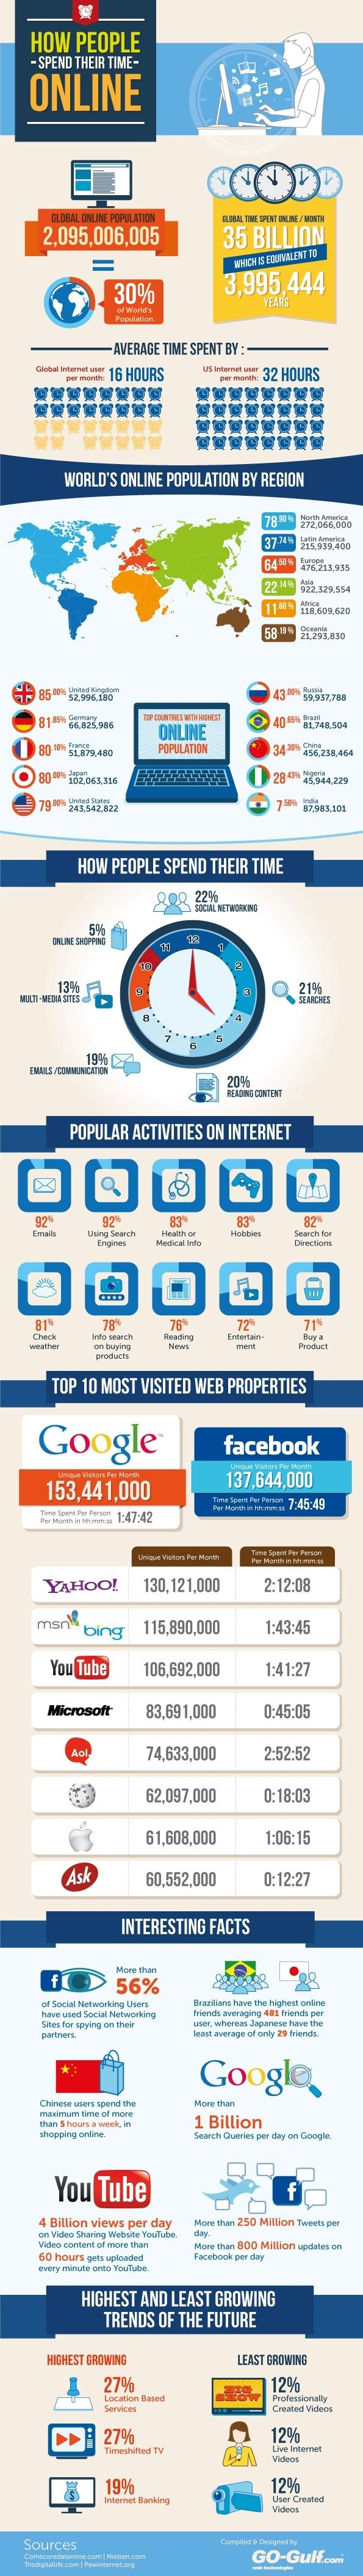 How People Spend Their Time Online [Infographic]